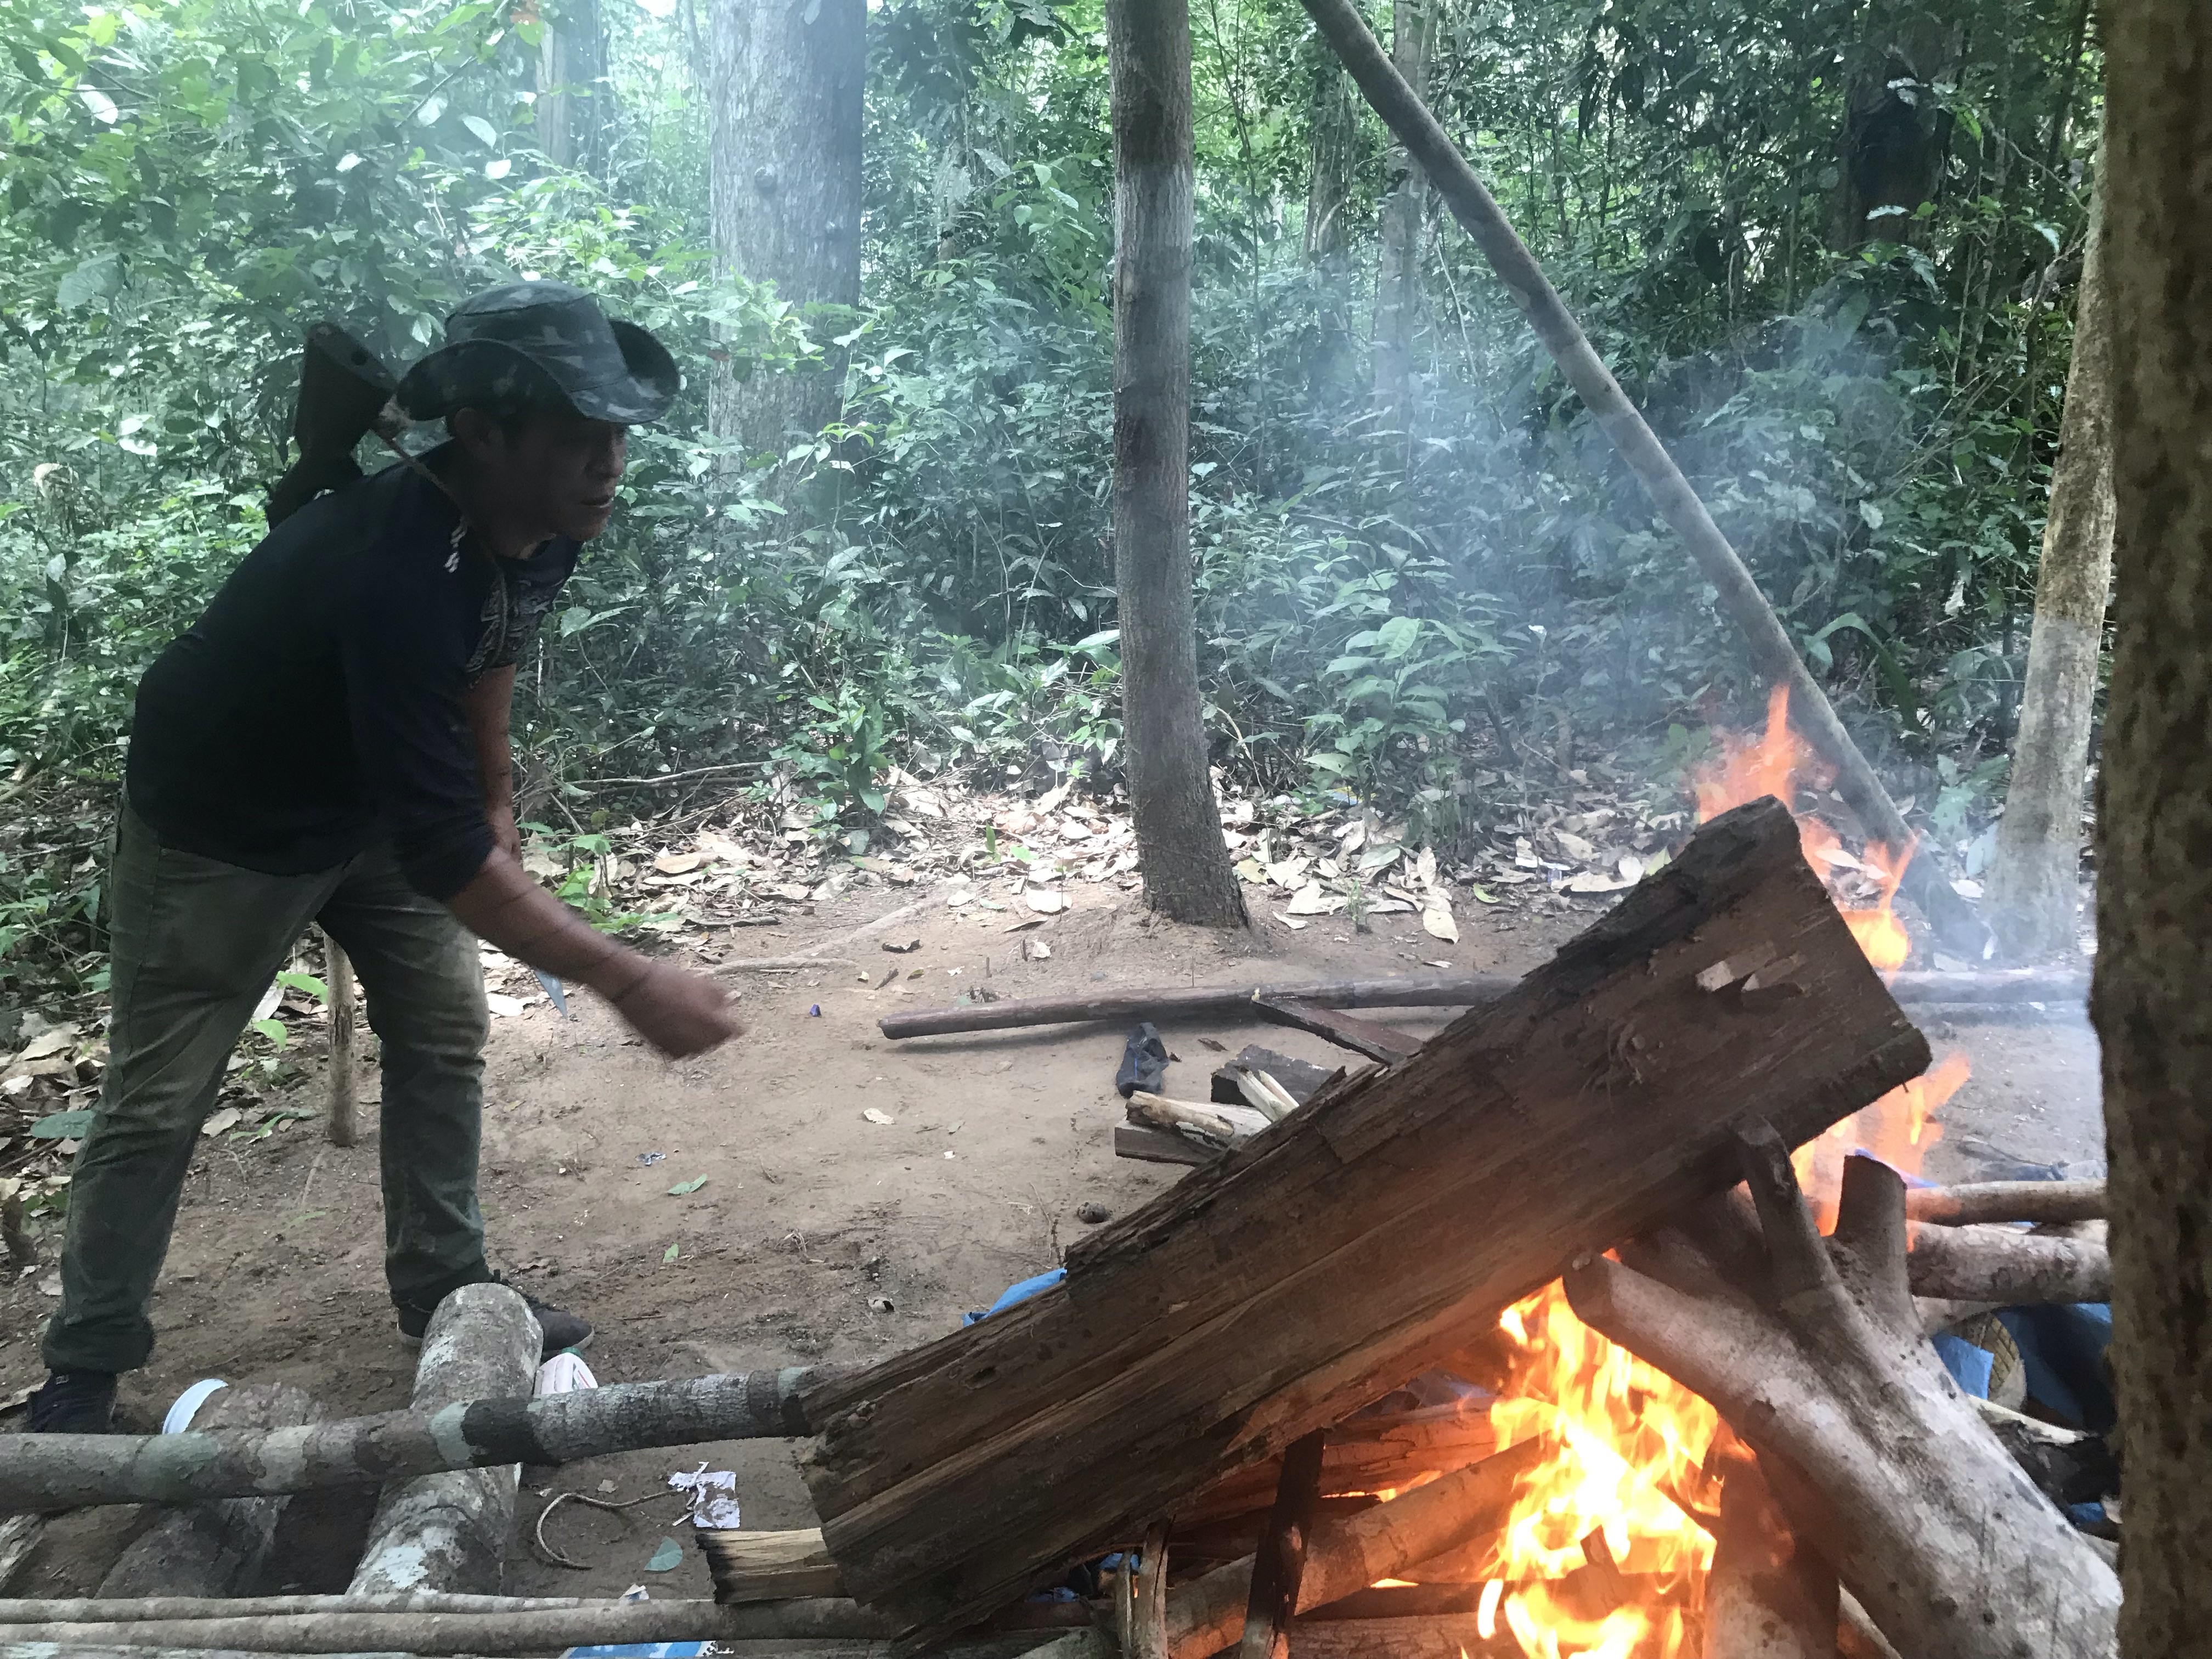 Indigenous Guajajara leader Laércio Guajajara, also a Guardian, was hit by two grazing shots by loggers in the Amazon. In this photo, he sets fire to an illegal logging camp on Jan 31, 2019. (Photo: Karla Mendes/Mongabay)